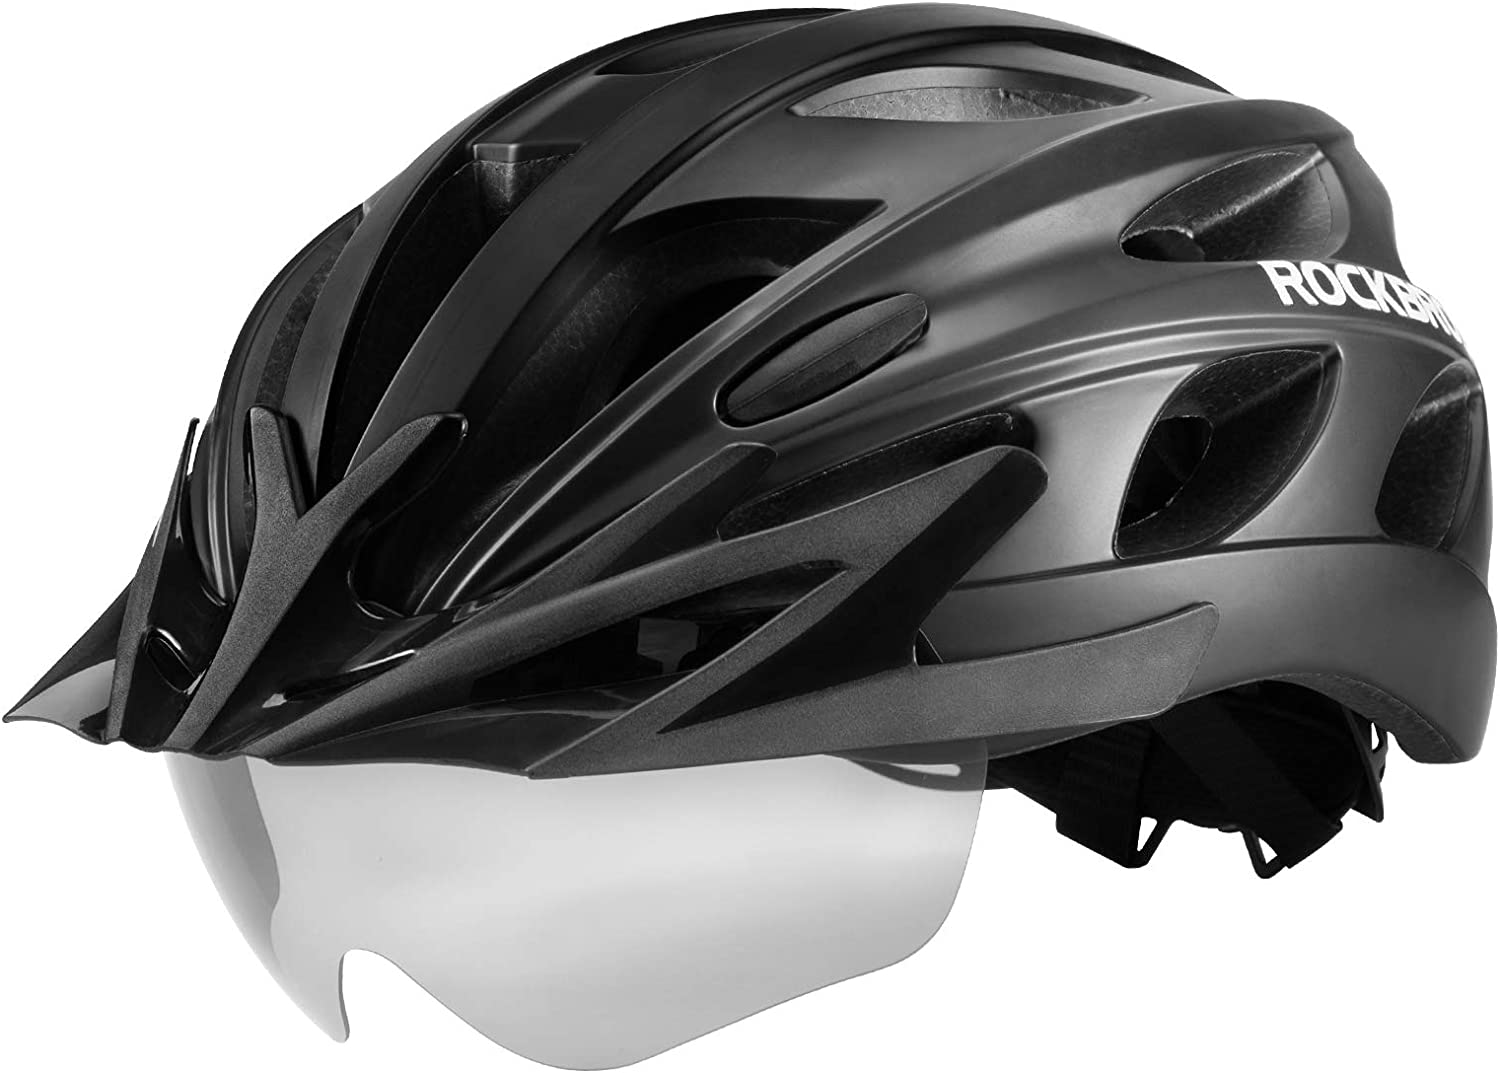 Color : Pink, Size : One Size Bicycle Helmet Bicycle Helmet Detachable Goggles Sun Visor Ladies Men Adjustable Comfort Safety Bicycle Helmet Outdoor Sports Cycling